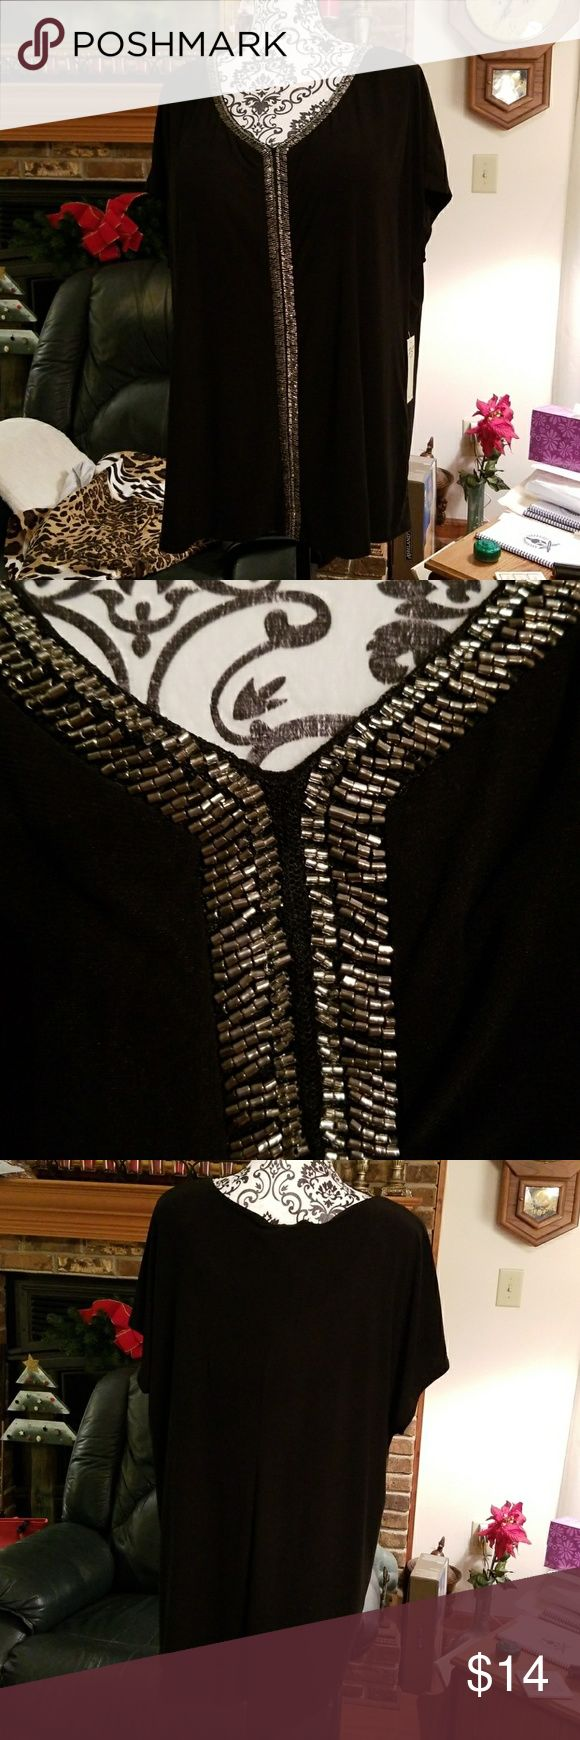 Black blouse NWT. PerSeption Woman black blouse. Trim is crusted with silver bugle beads. Short, slightly butterfly sleeves. Can go from office to night. PerSeption Woman Tops Blouses